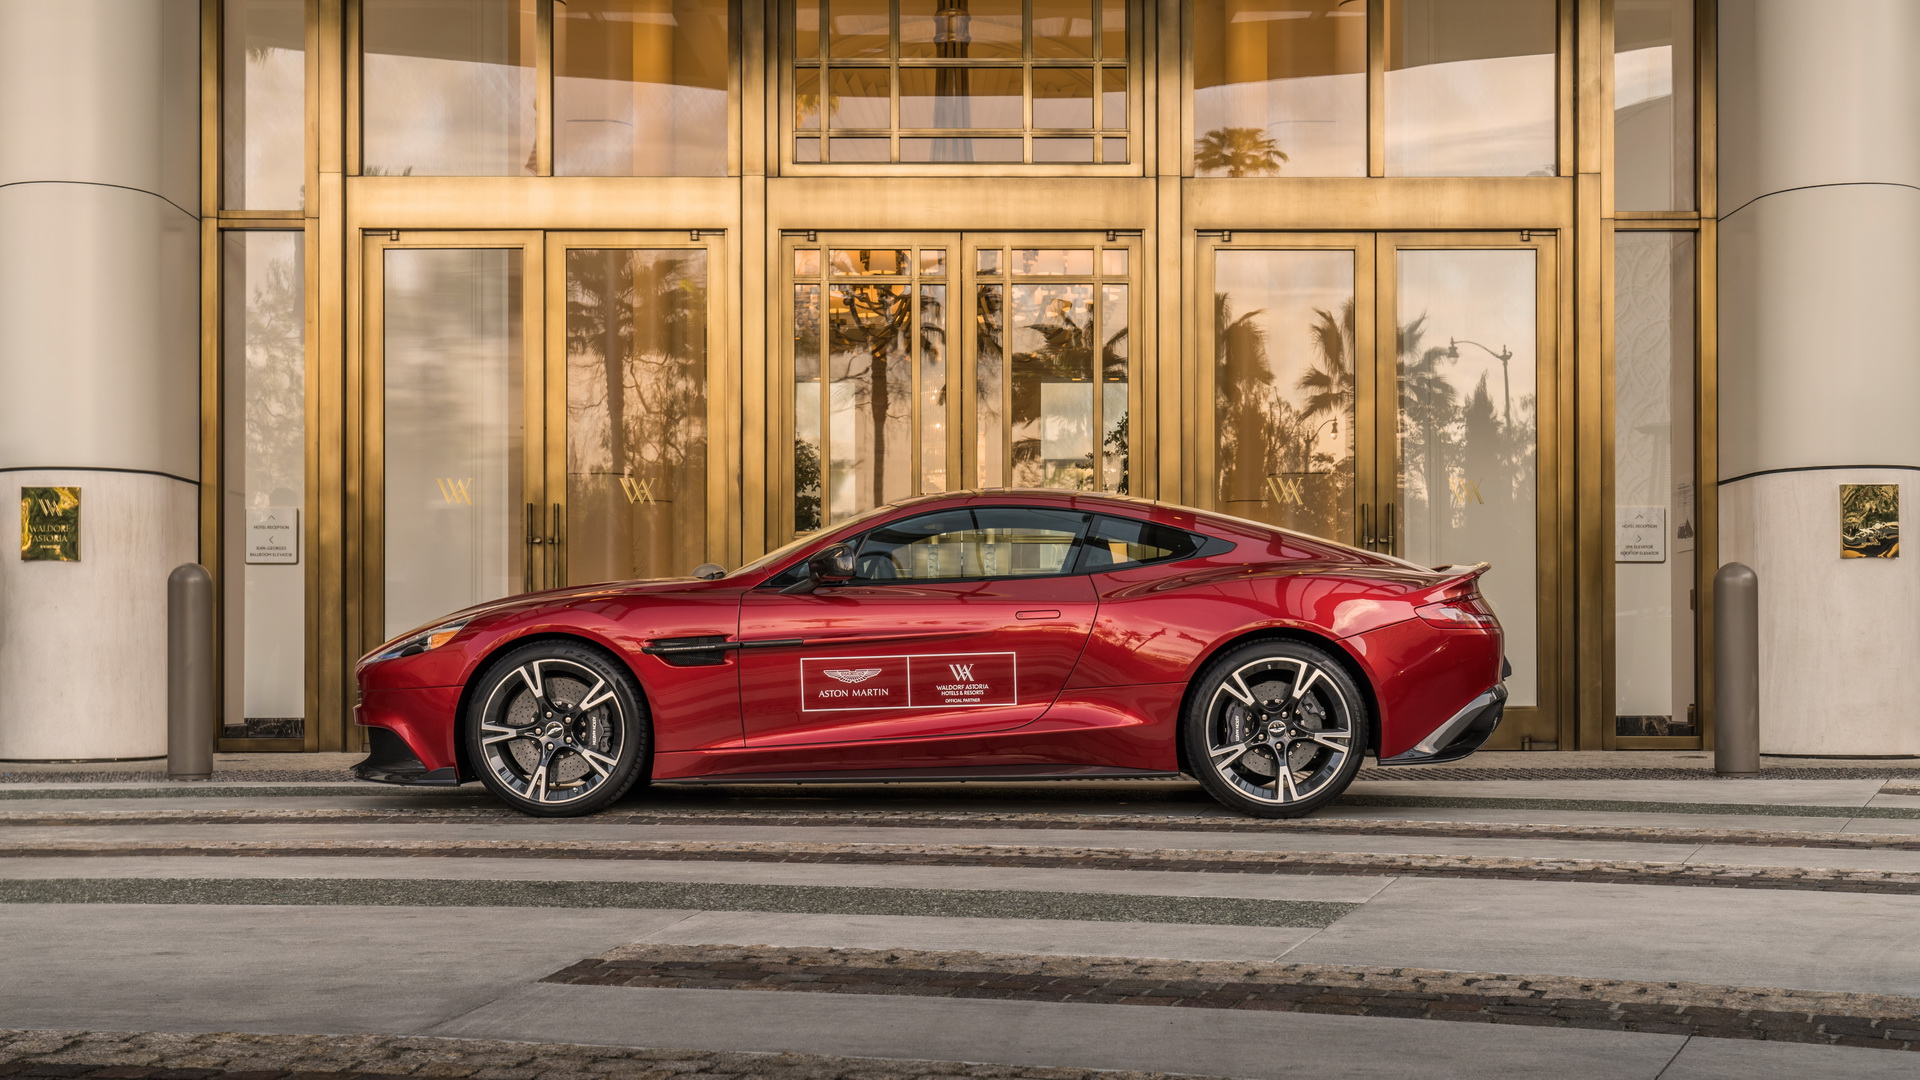 Walforf Astoria partnership with Aston Martin